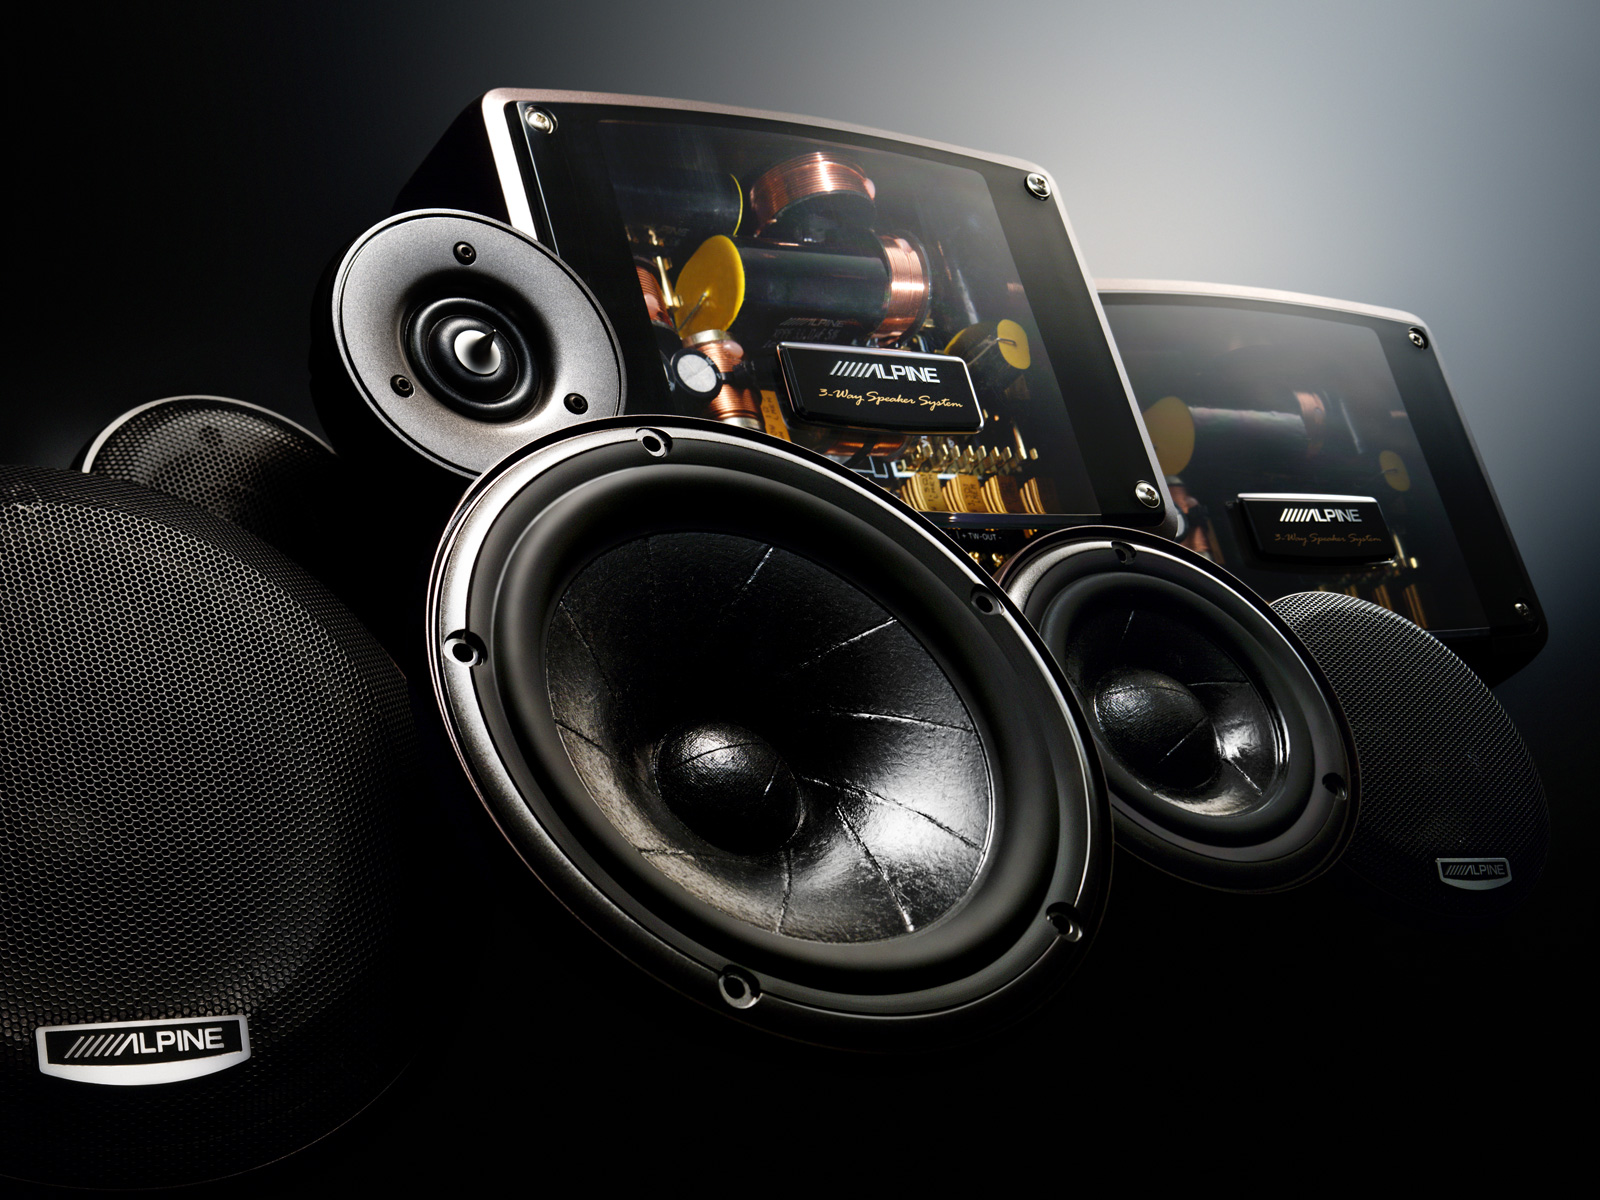 Bose Speakers For Cars >> Audison Voce, Dynaudio Esotec or ??? - Car Audio | DiyMobileAudio.com | Car Stereo Forum